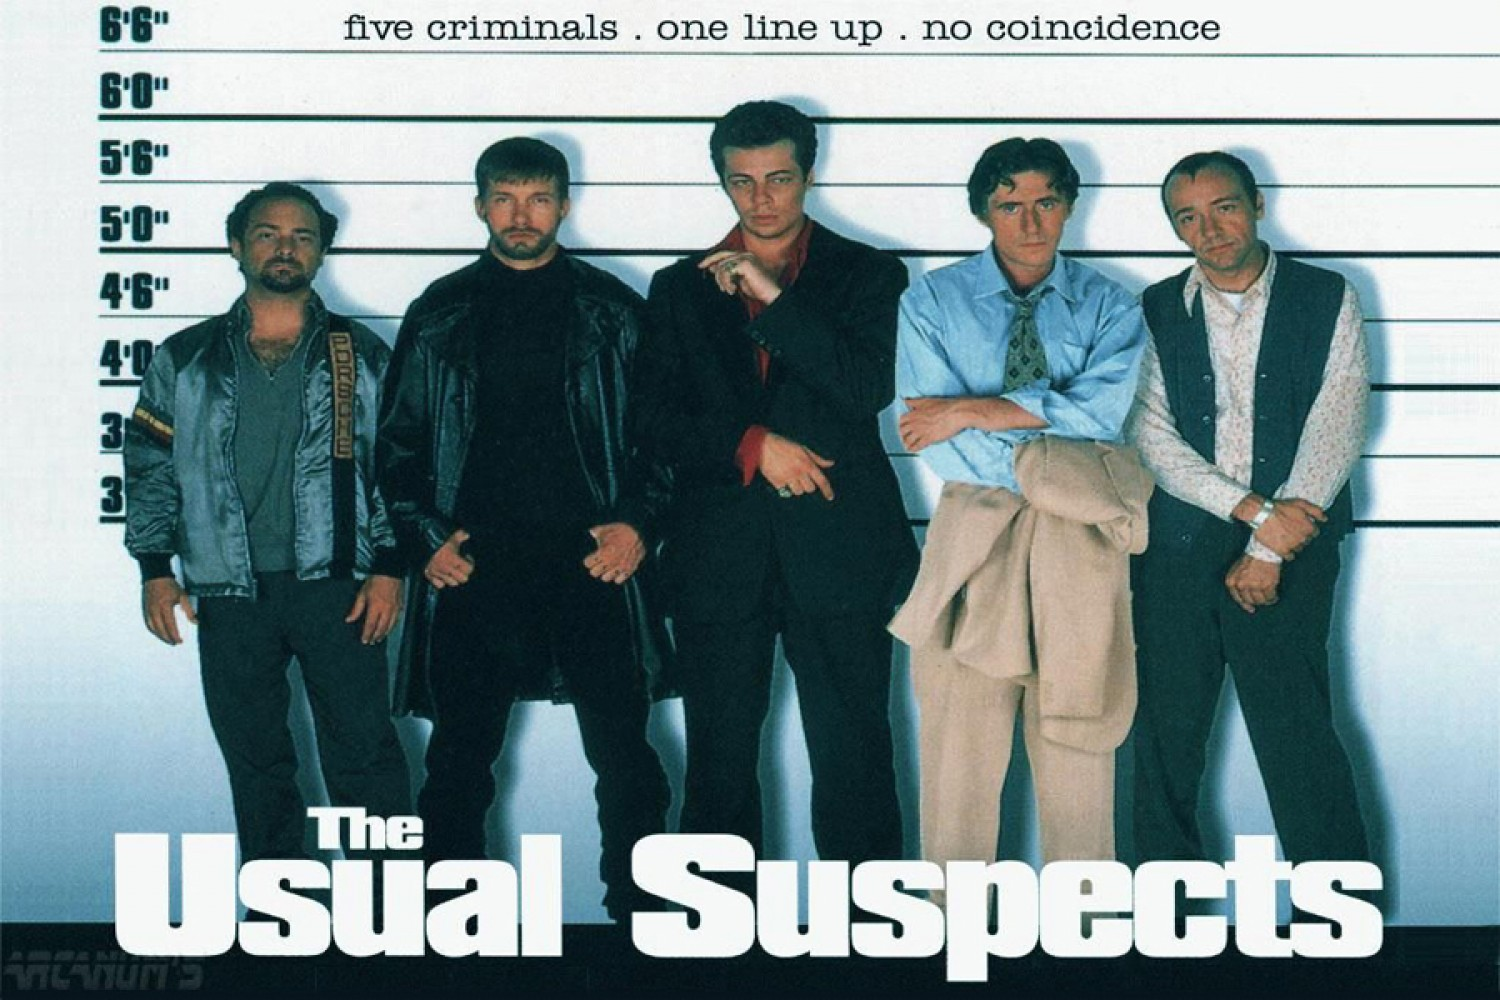 The Usual Suspects Movie dual audio [Eng-Hindi] Download Full In 700mb